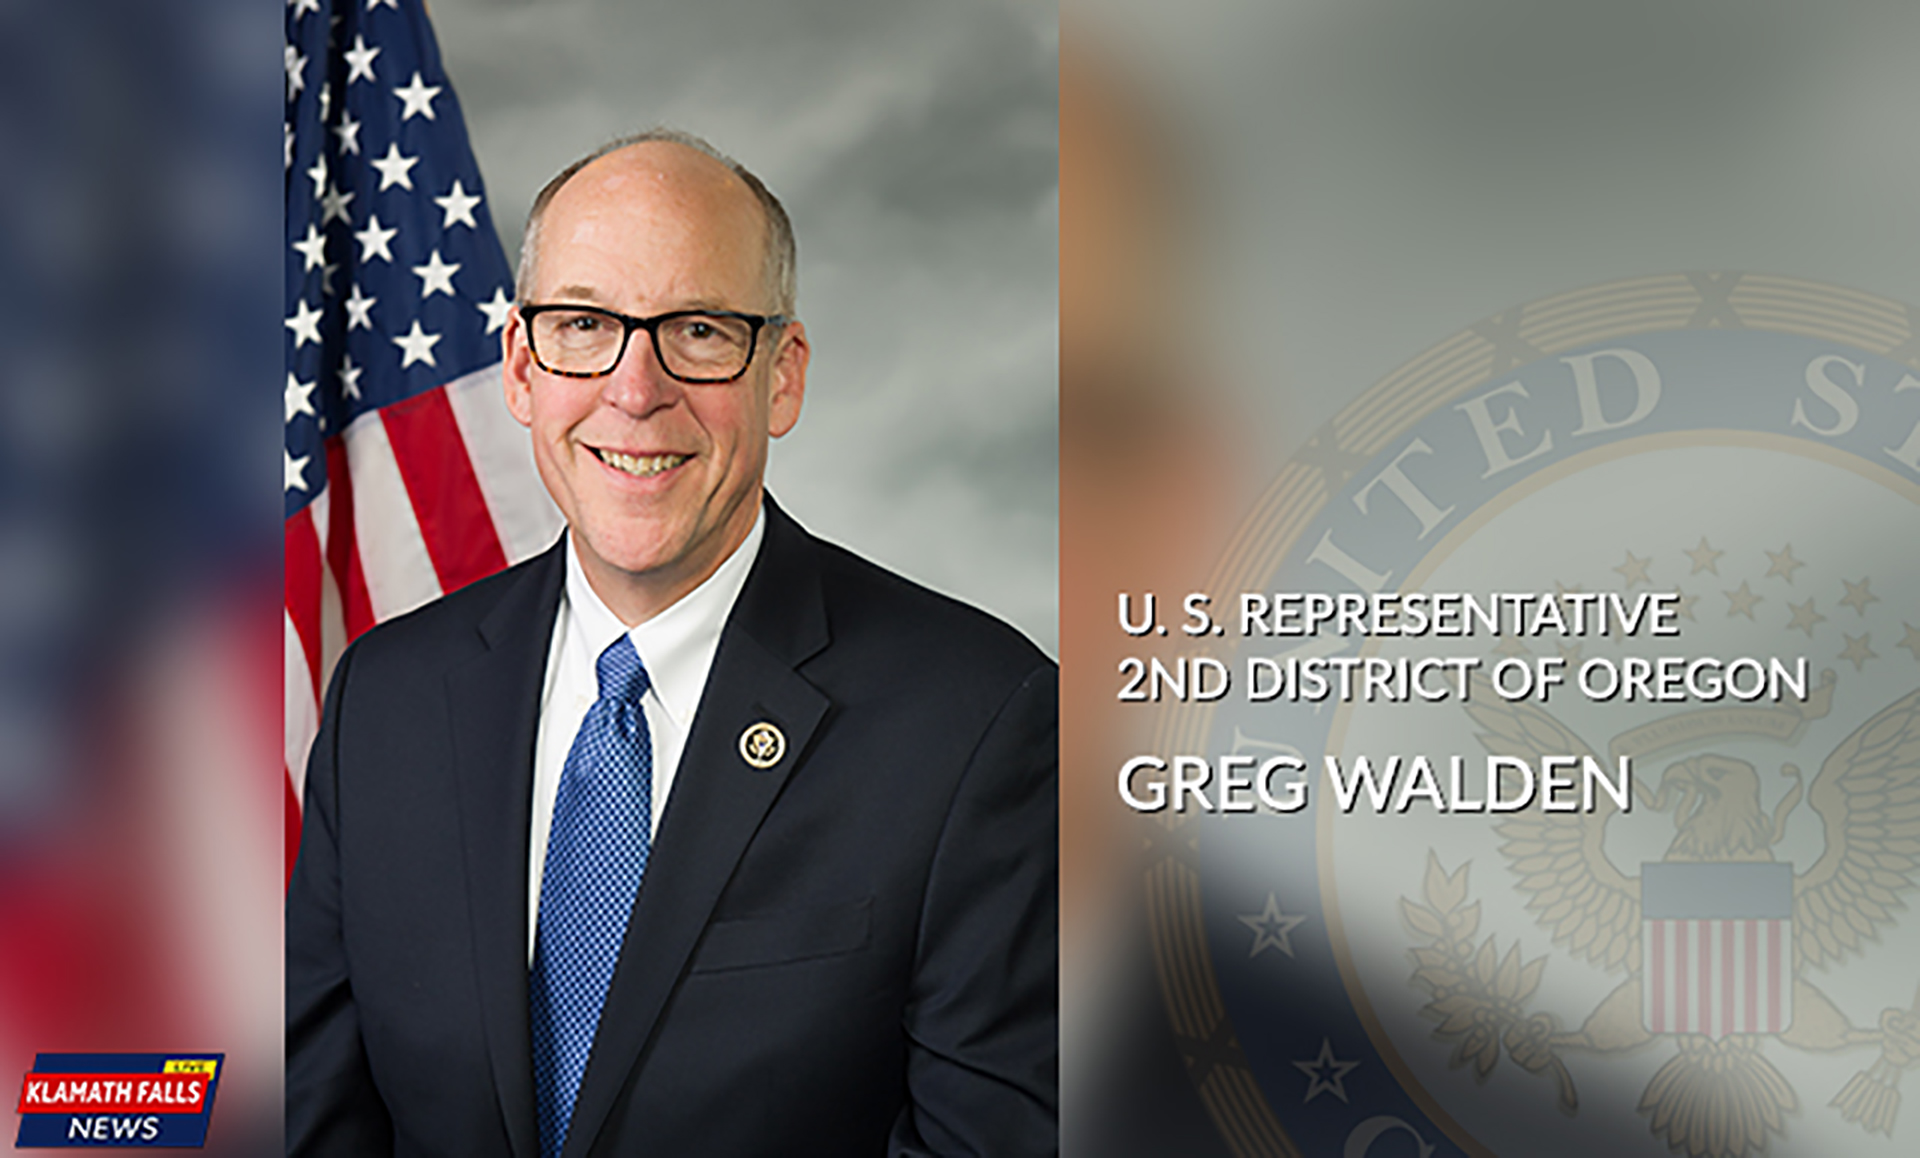 Greg Walden.jpg